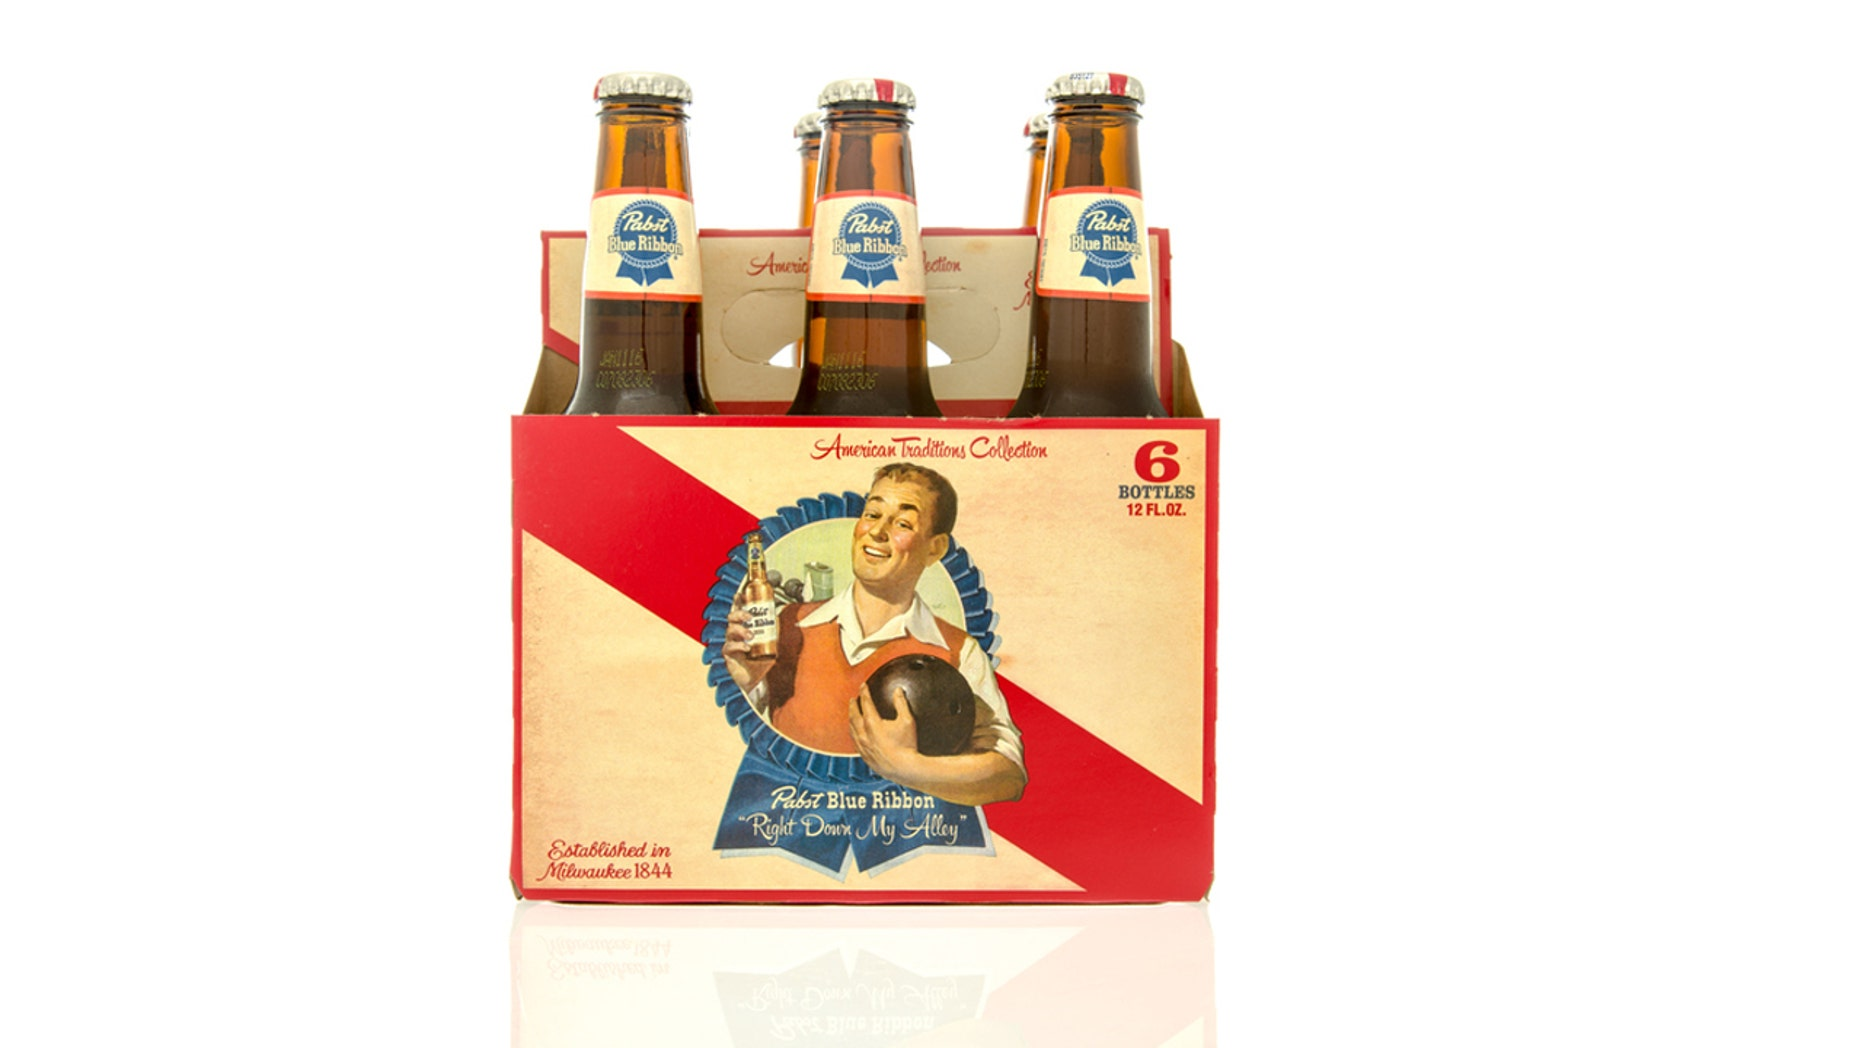 There's a long history behind Pabst Blue Ribbon beer.